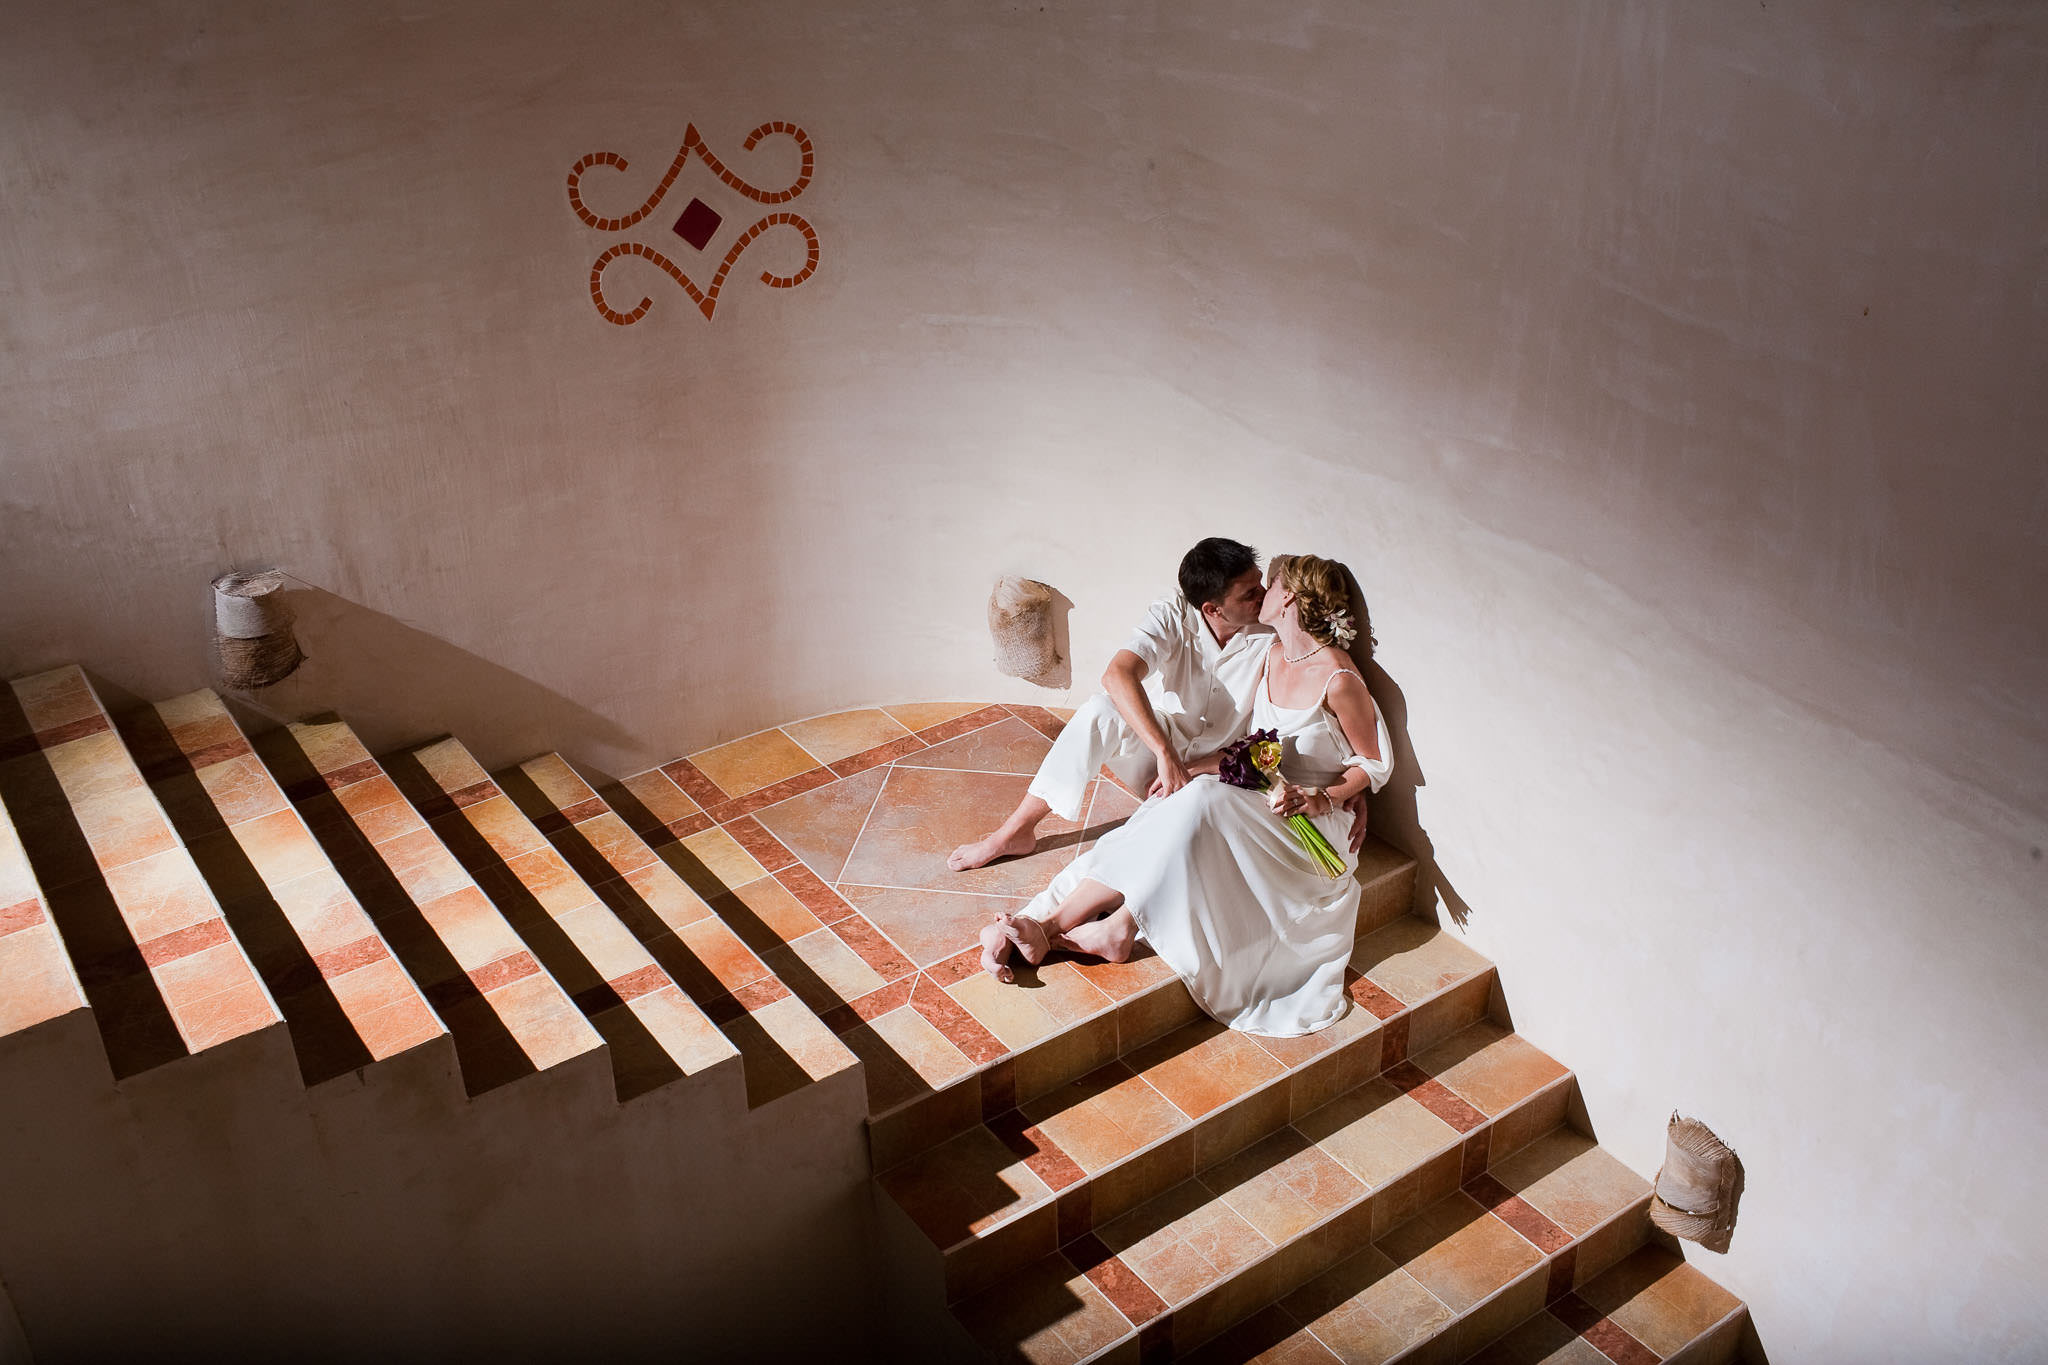 Wedding couples at Mil Amores, Tulum